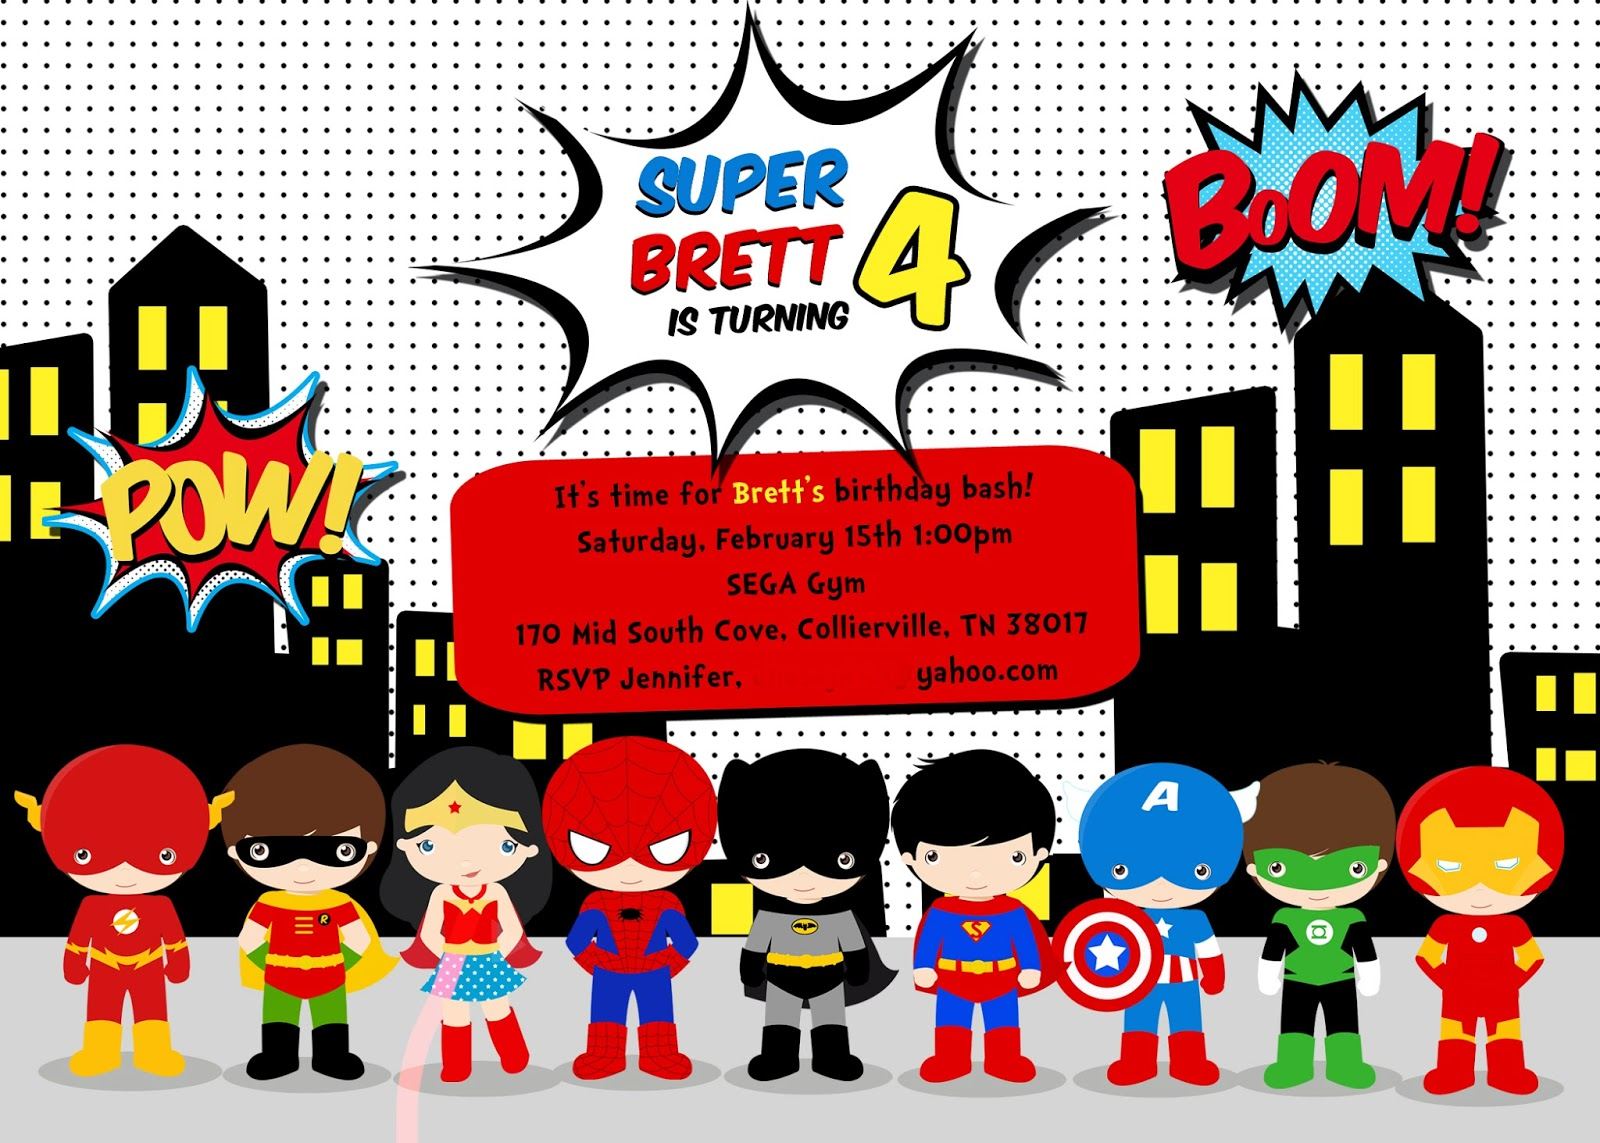 birthday party invitations templates gangcraft net superhero birthday party invitation mickey mouse invitations birthday invitations